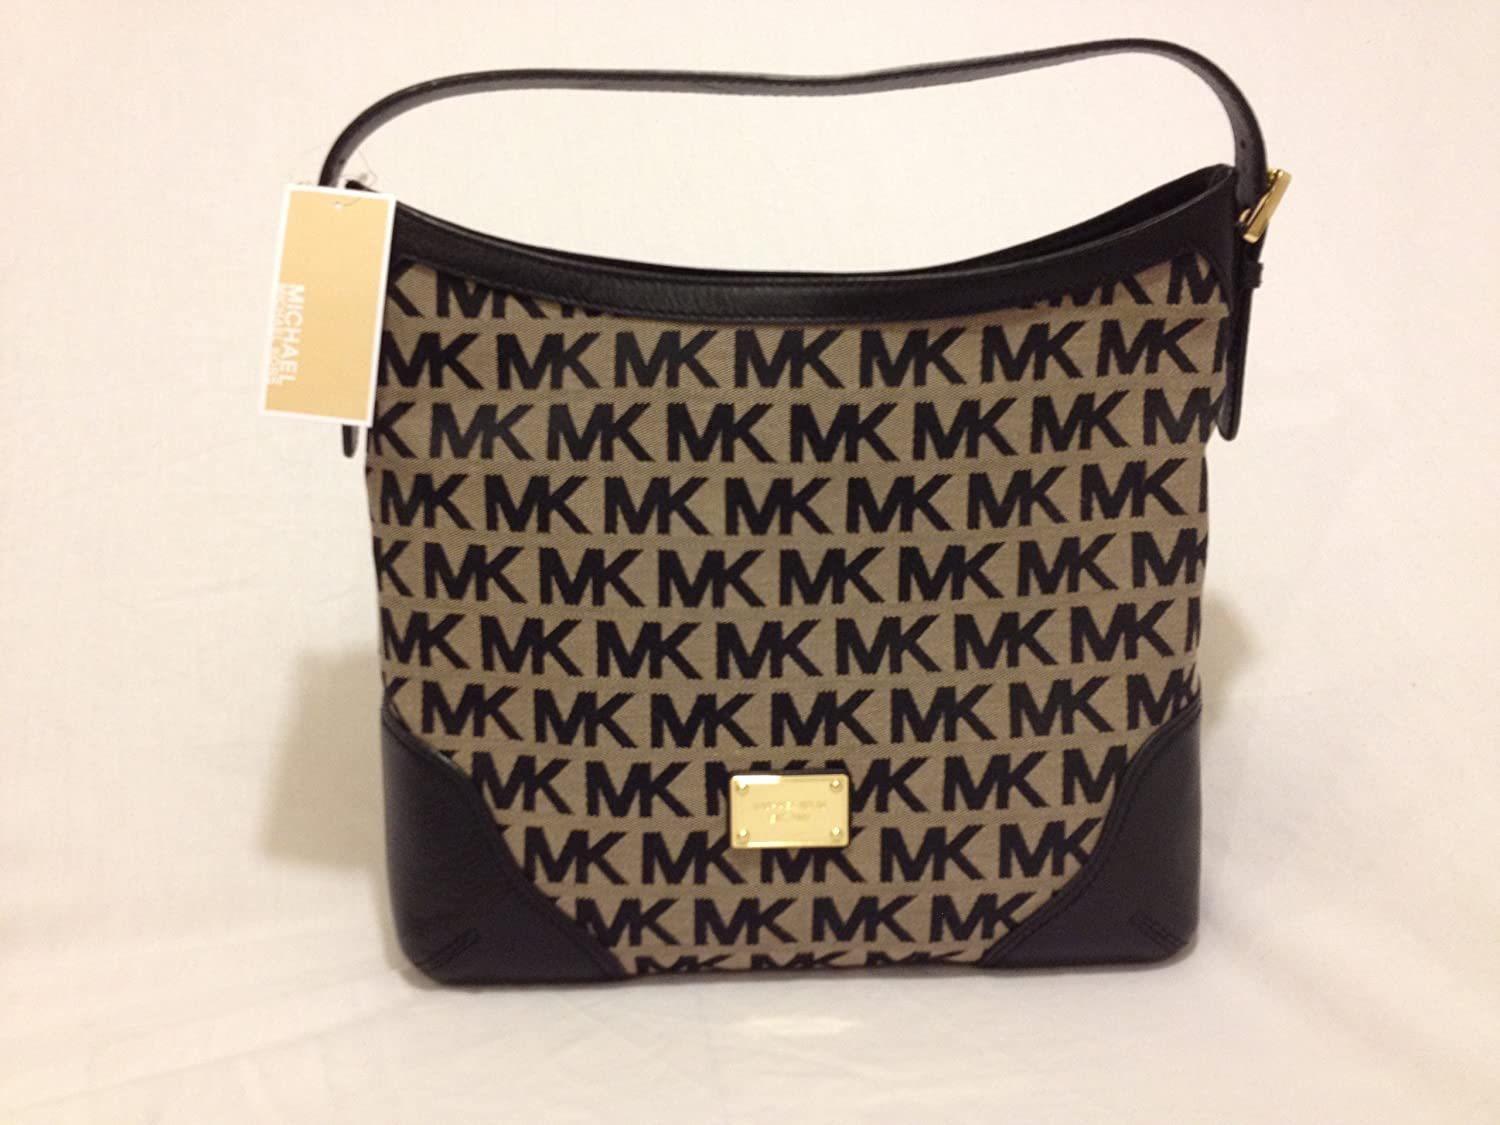 Michael Kors MK Signature Millbrook Large Shoulder Bag Handbag -  Beige black black  Handbags  Amazon.com 2095239b945bf